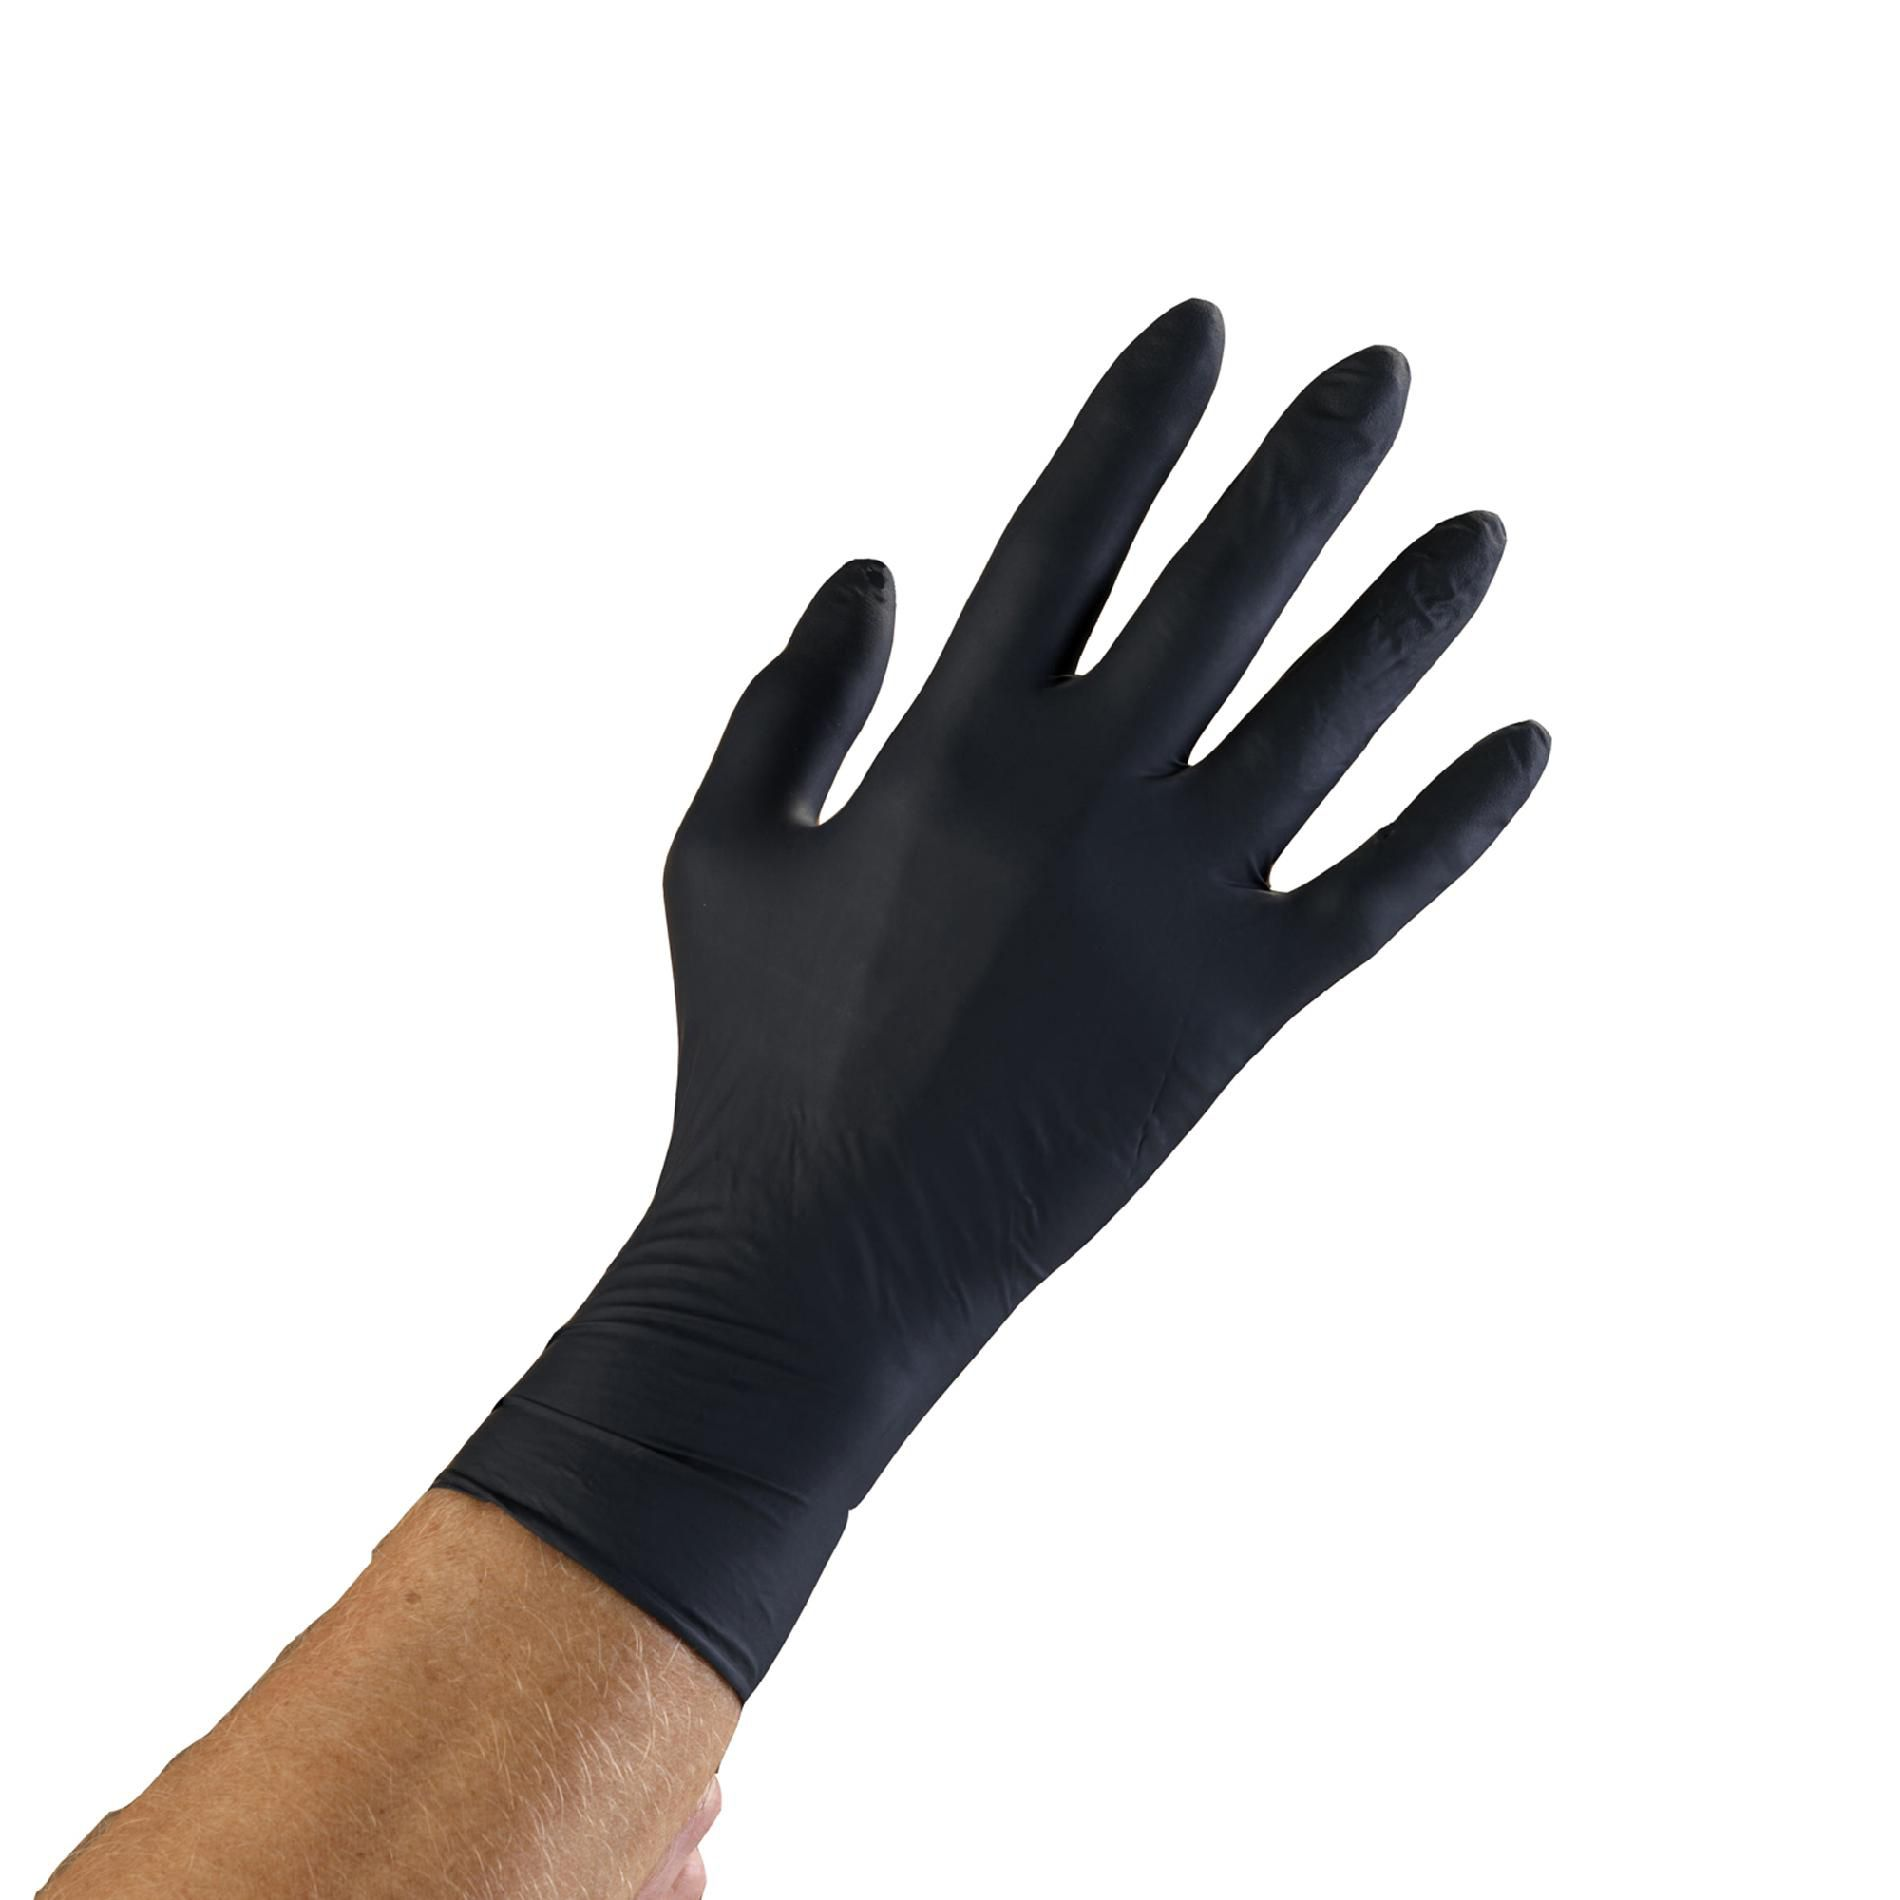 Microflex N643 ONYX Black Nitrile Examination Gloves  Box of 100  Size Large PartNumber: 038V005450520000P